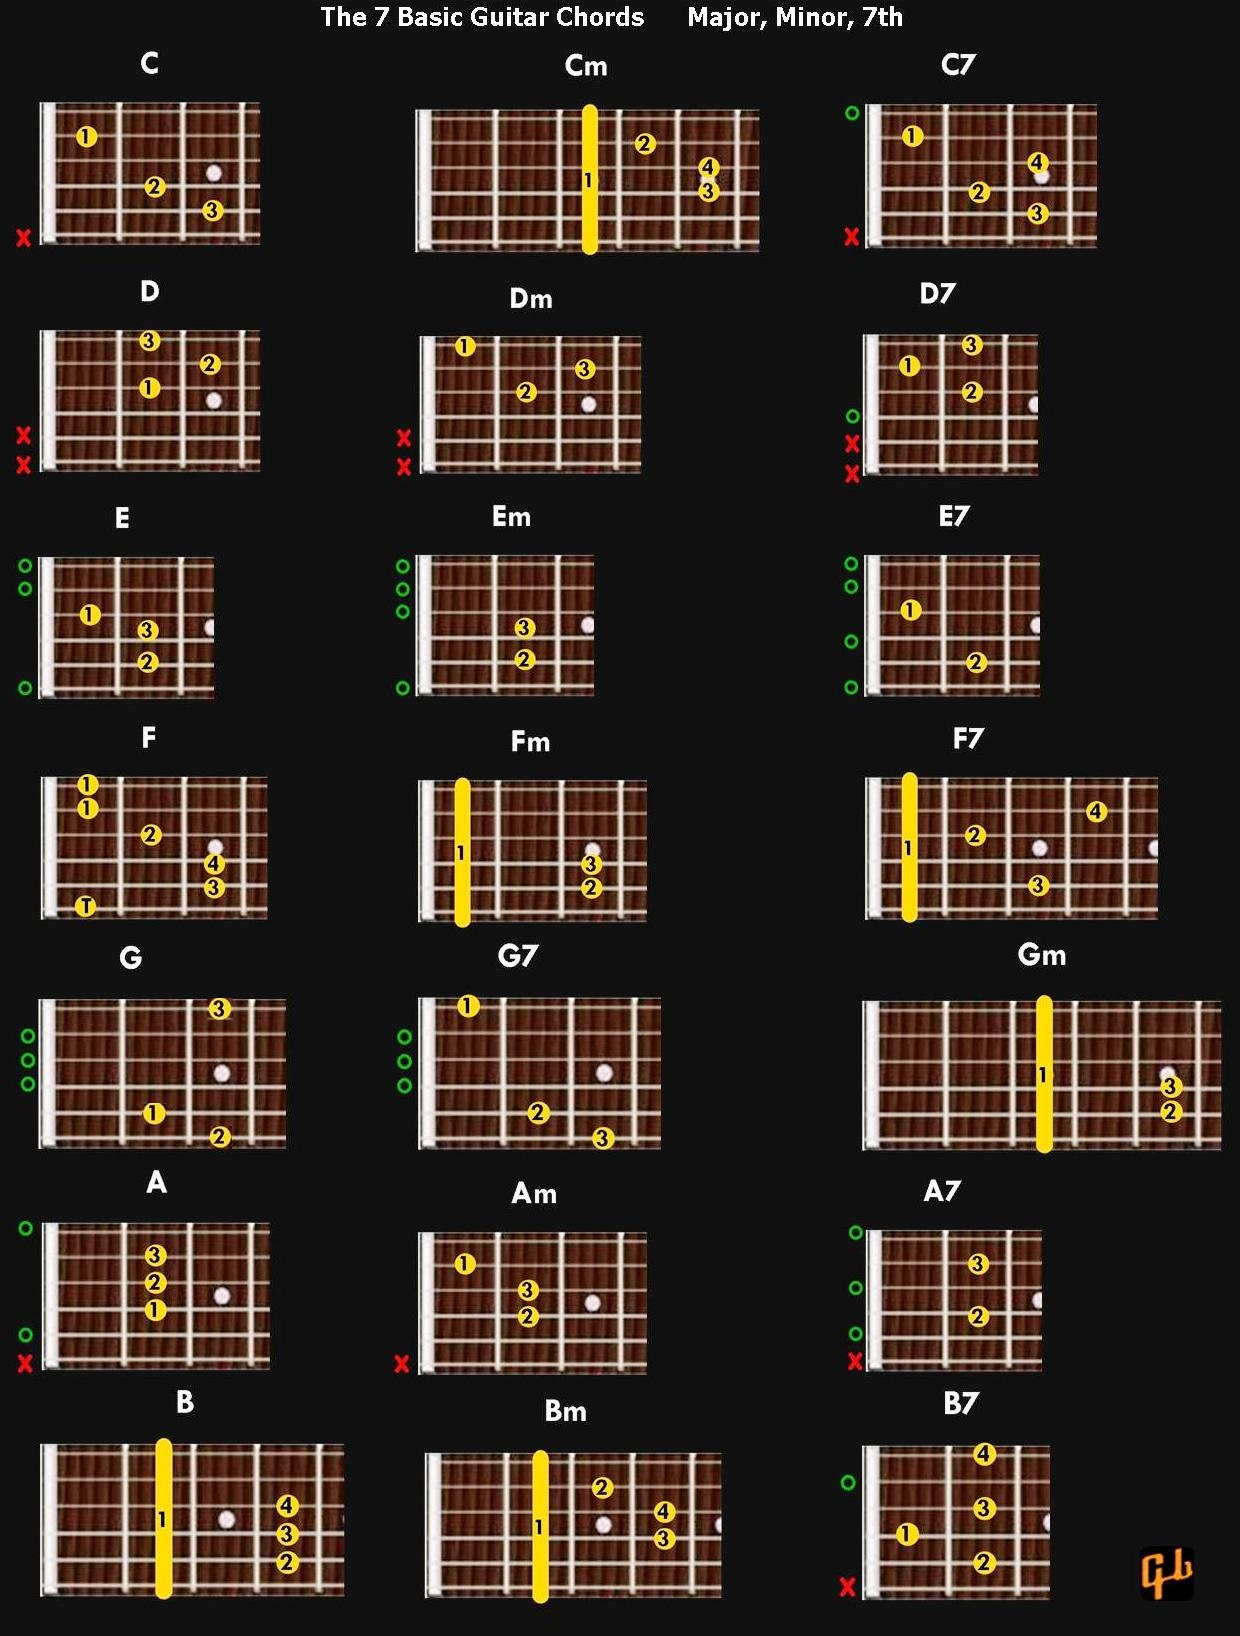 Major, Minor and 7thChords Chart